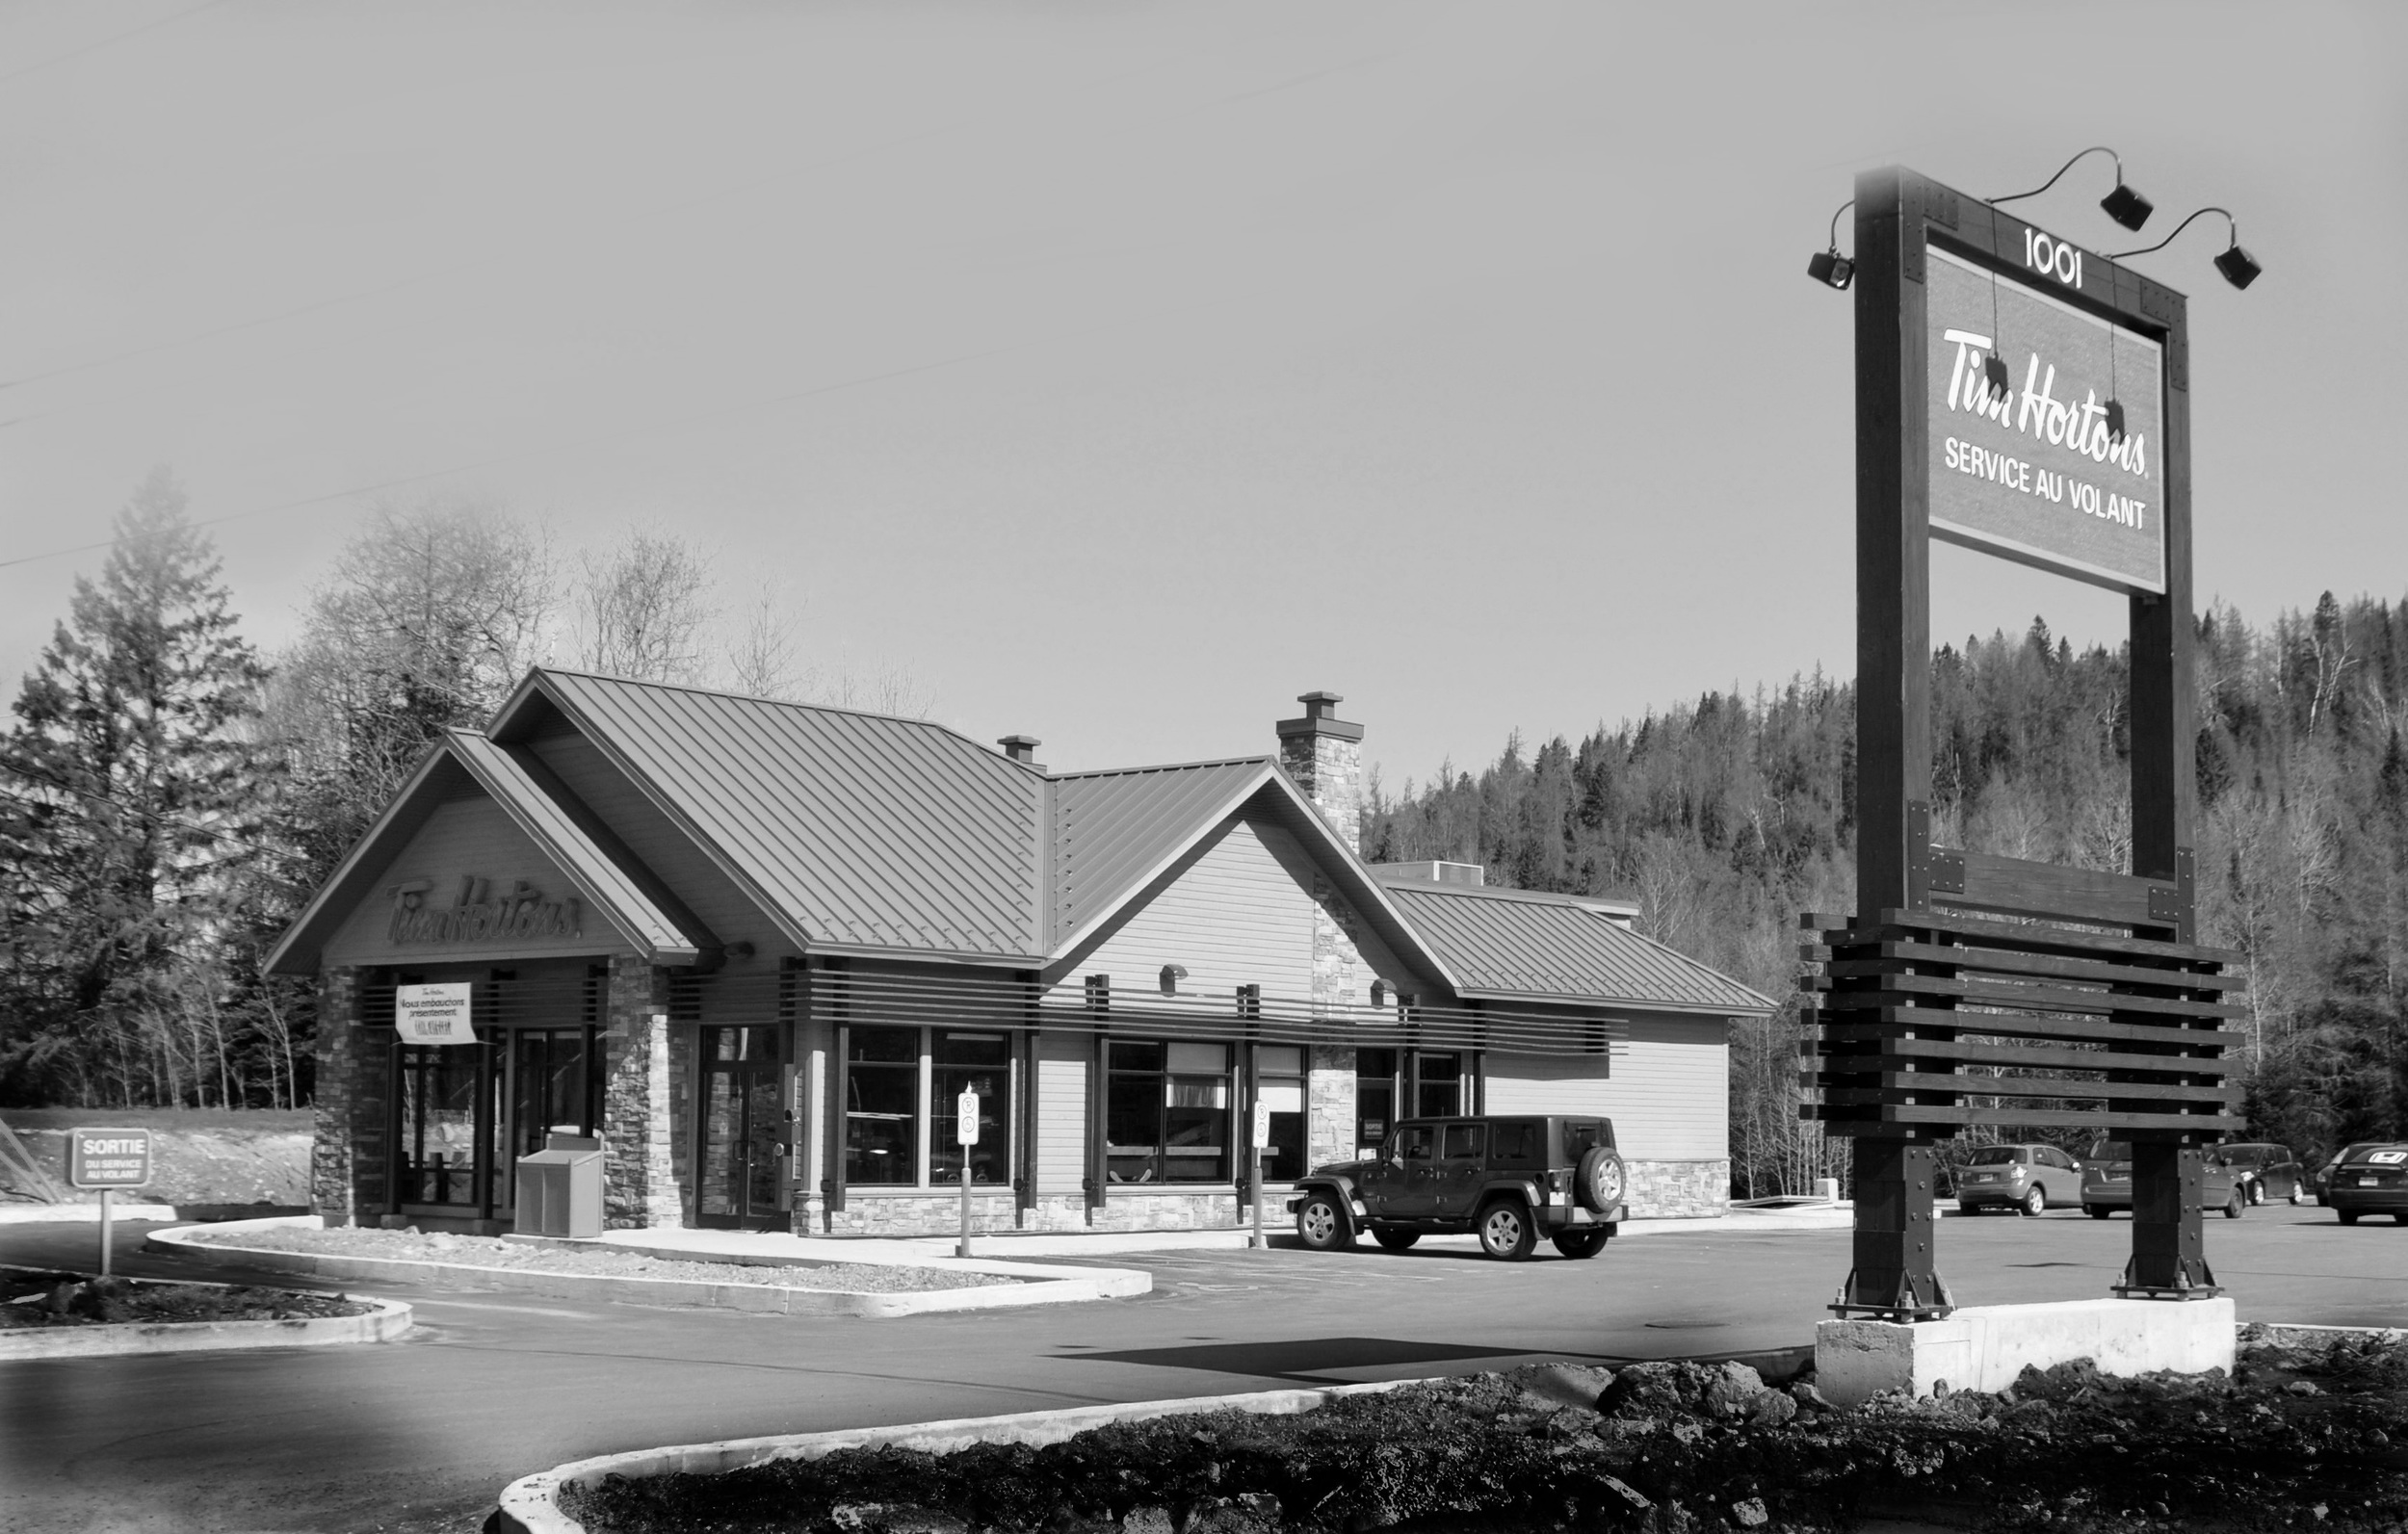 Tim Horton's - Commercial Development, Ste-Agathe-des-Monts, Quebec